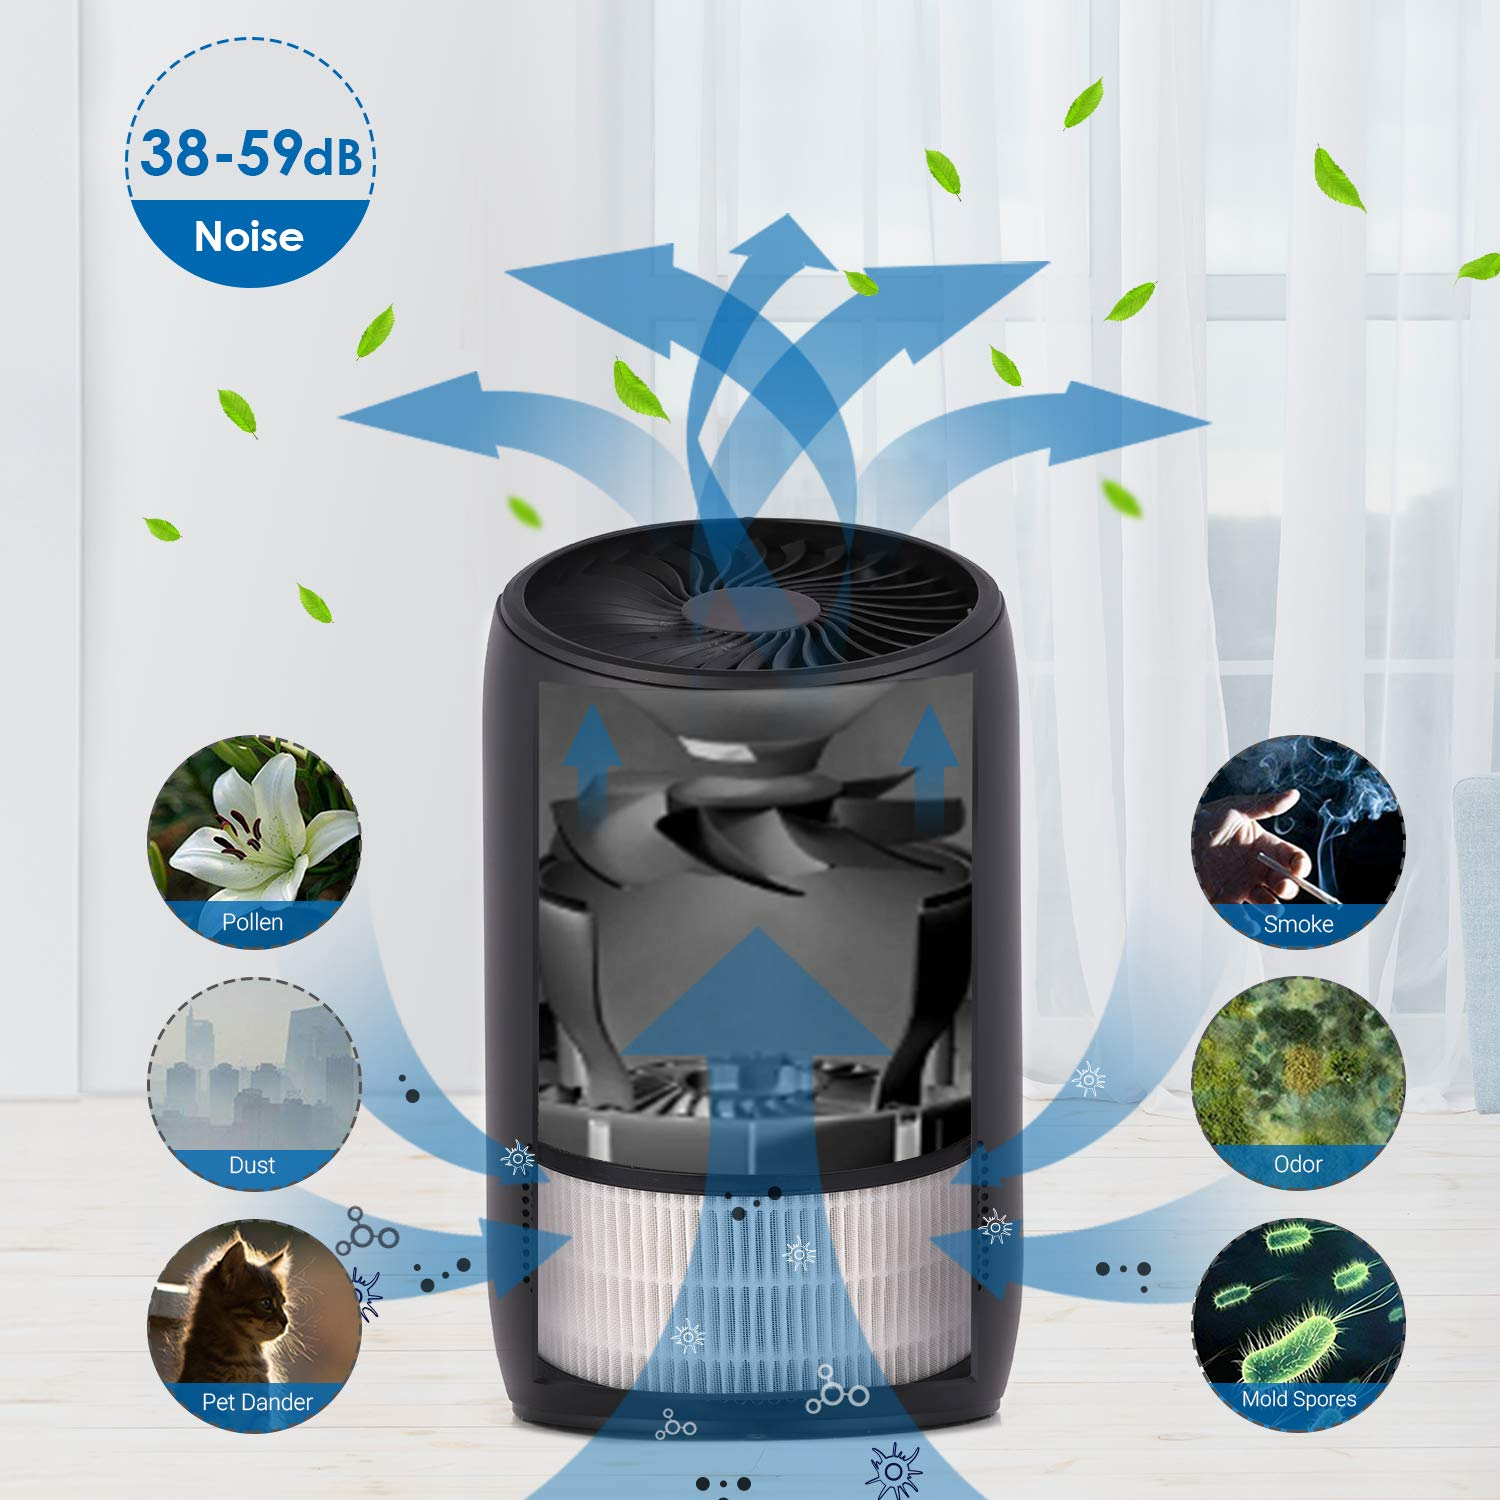 PARTU Air Purifier - things to consider before buying an air purifier - topratedhomeproducts